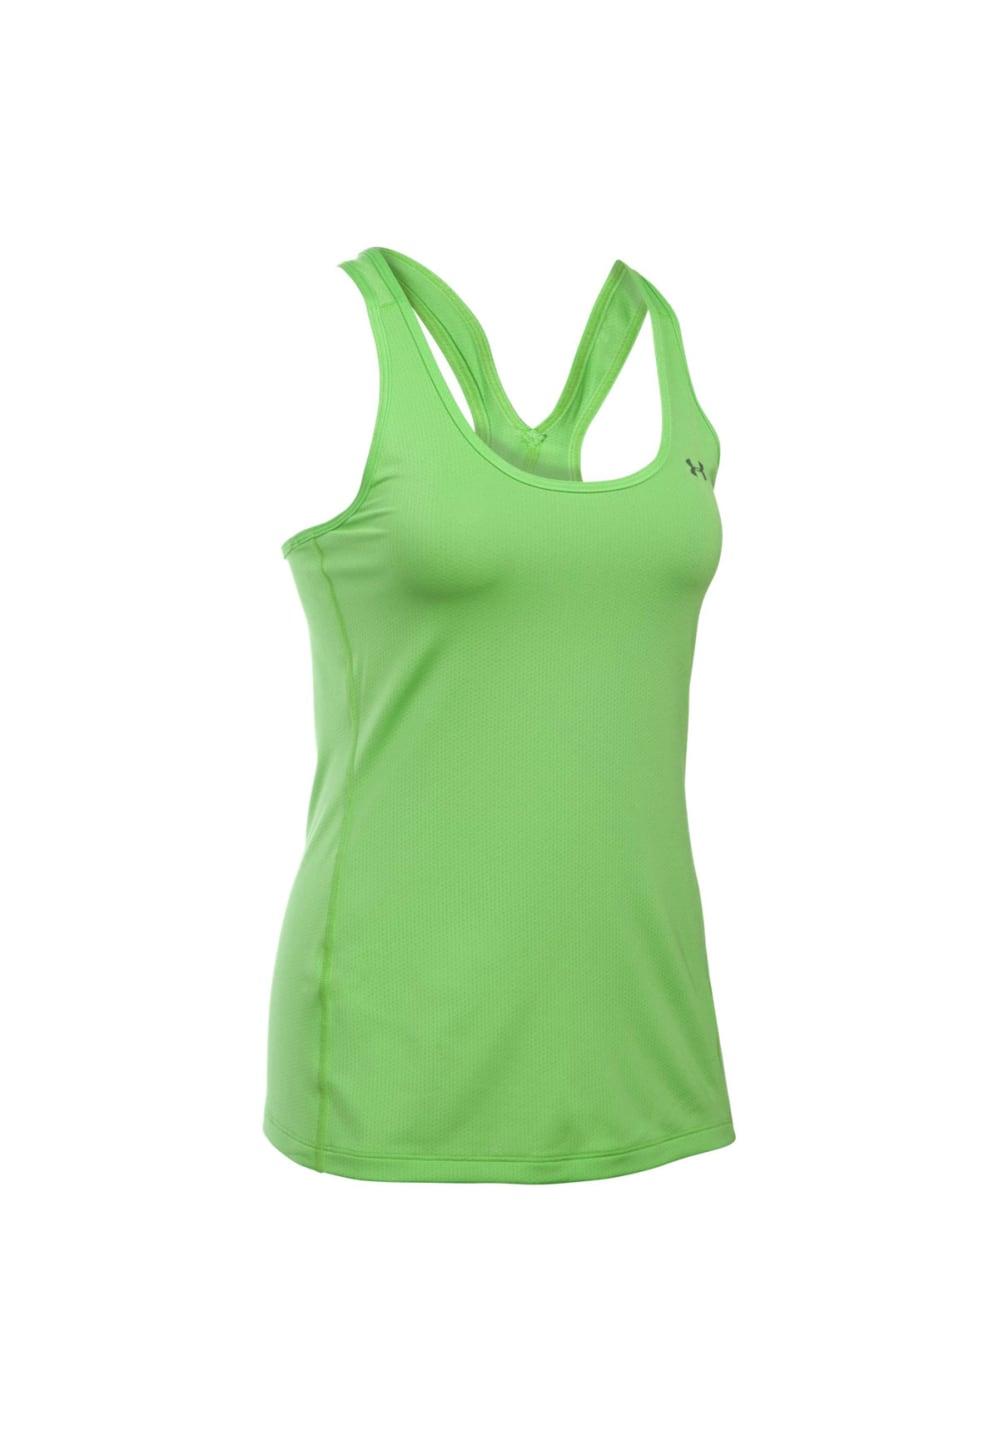 9822ed53 Under Armour HG Armour Racer Tank - Functional underwear for Women - Green